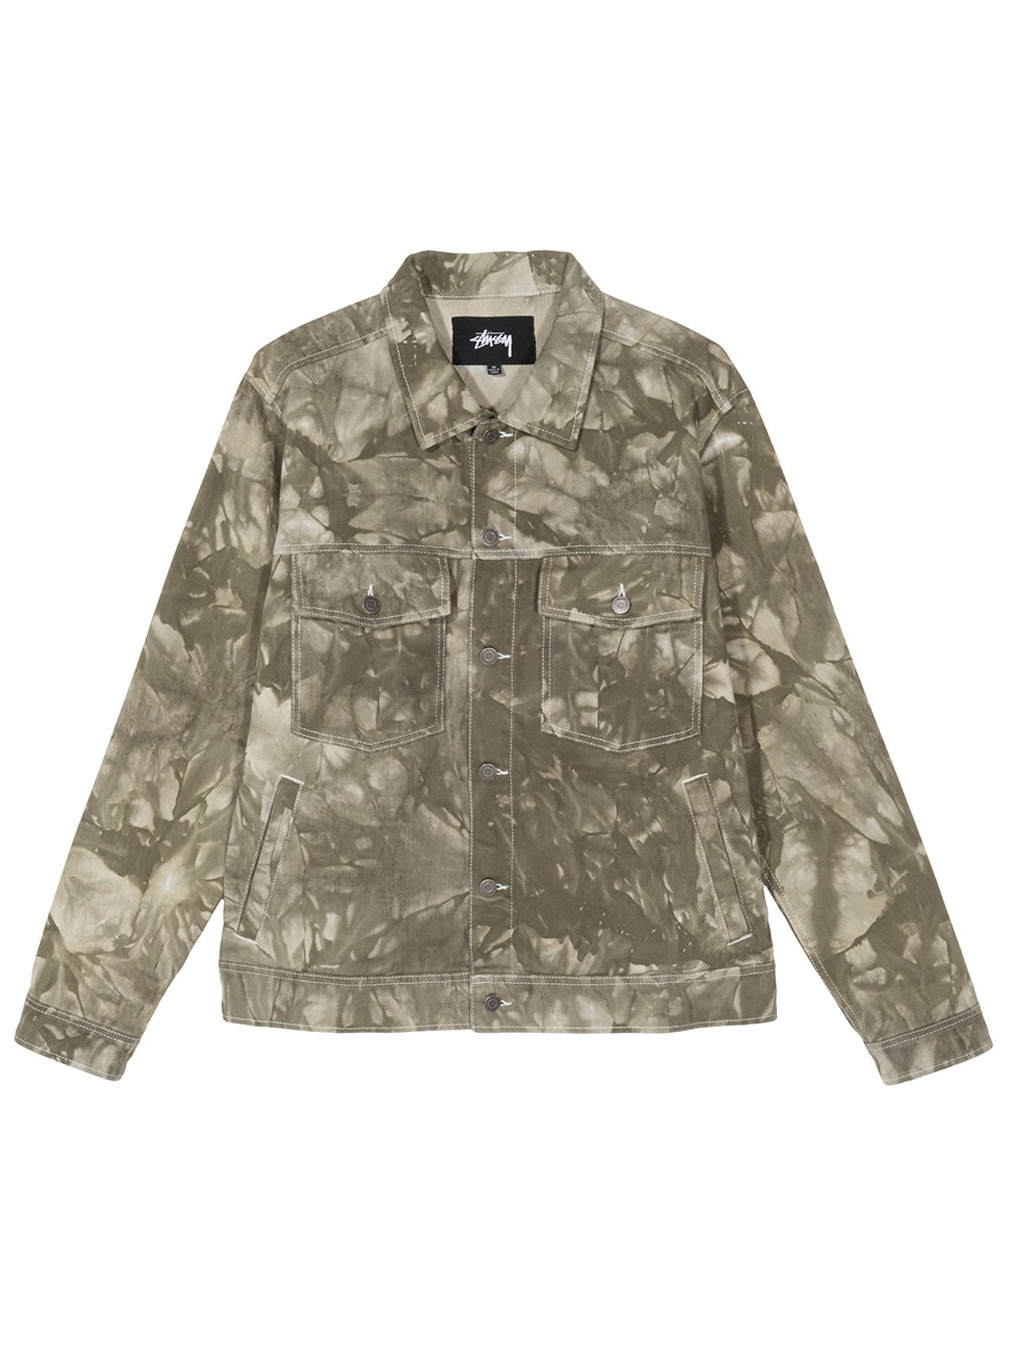 STUSSY 20SS DYED RANCH JACKET OLIVE